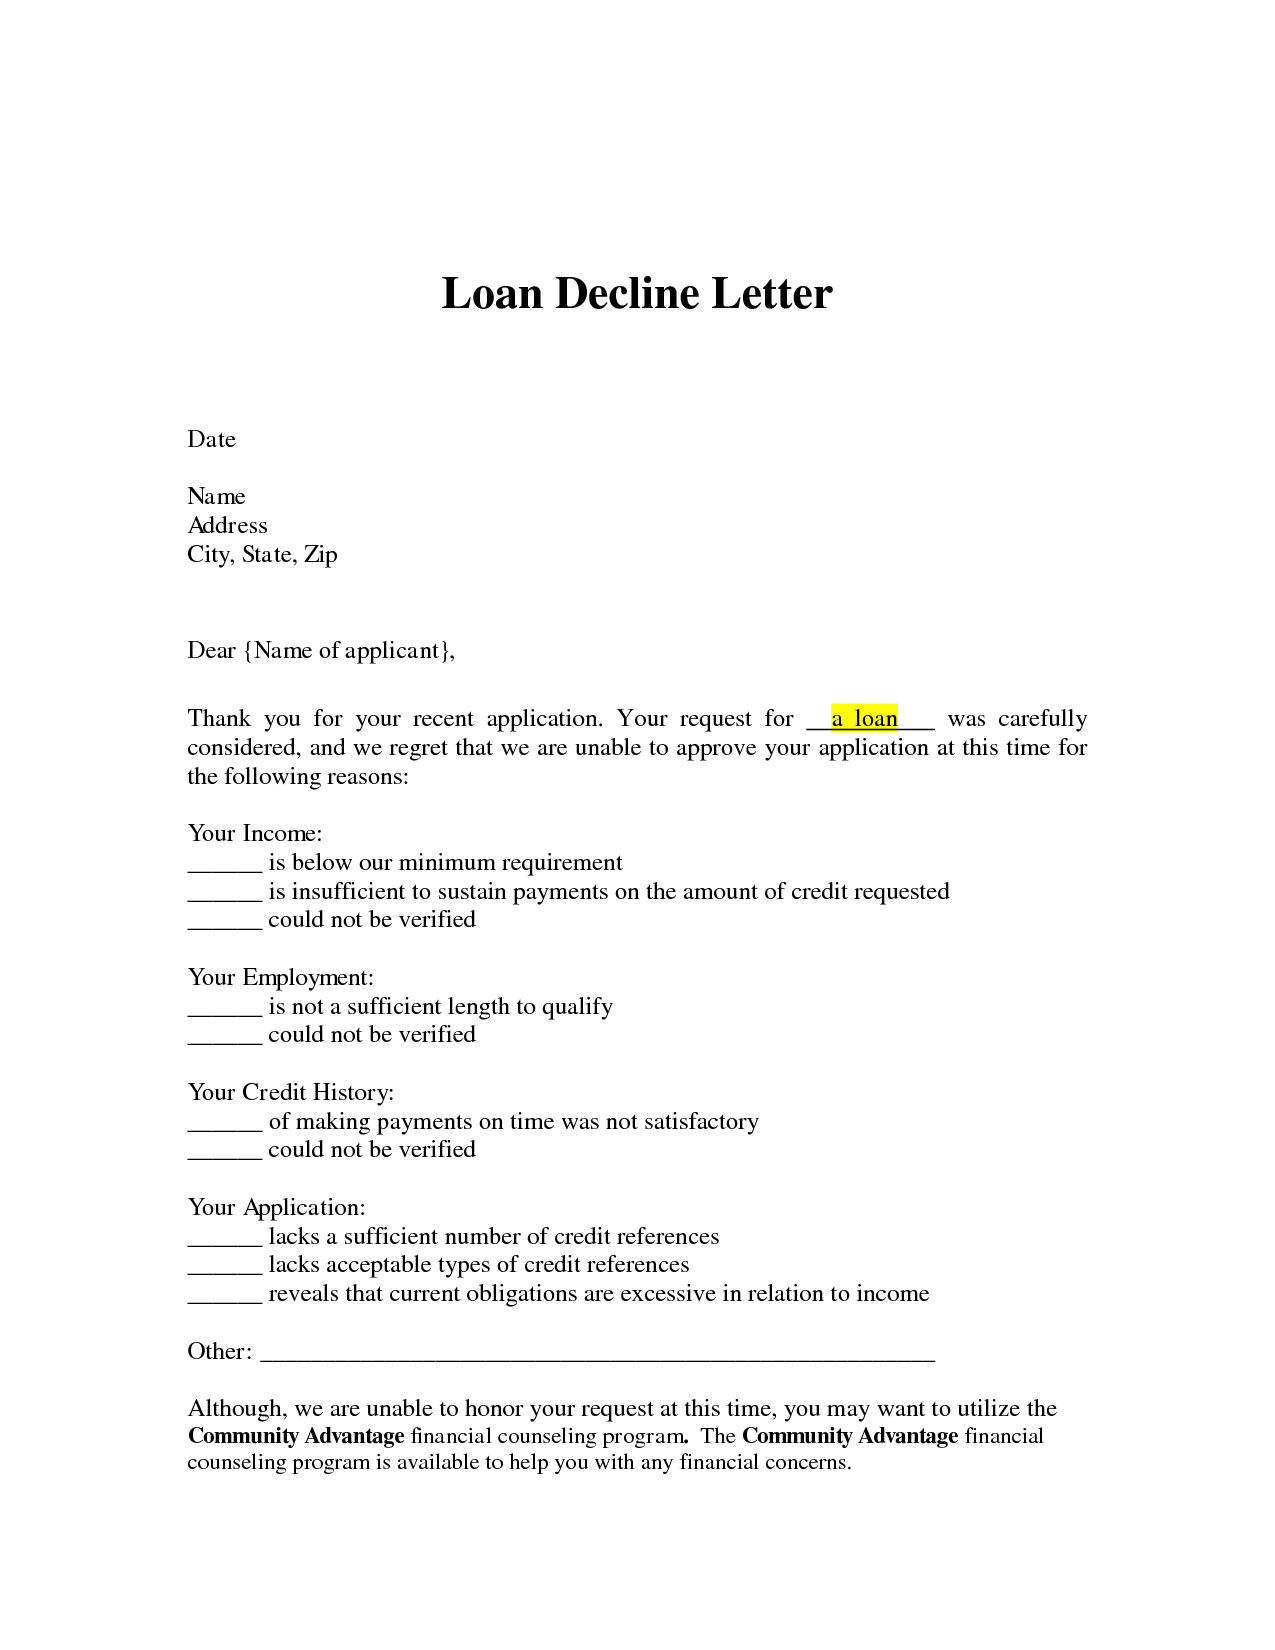 Claim Denial Letter Template - Loan Decline Letter Loan Denial Letter Arrives You Can Use that